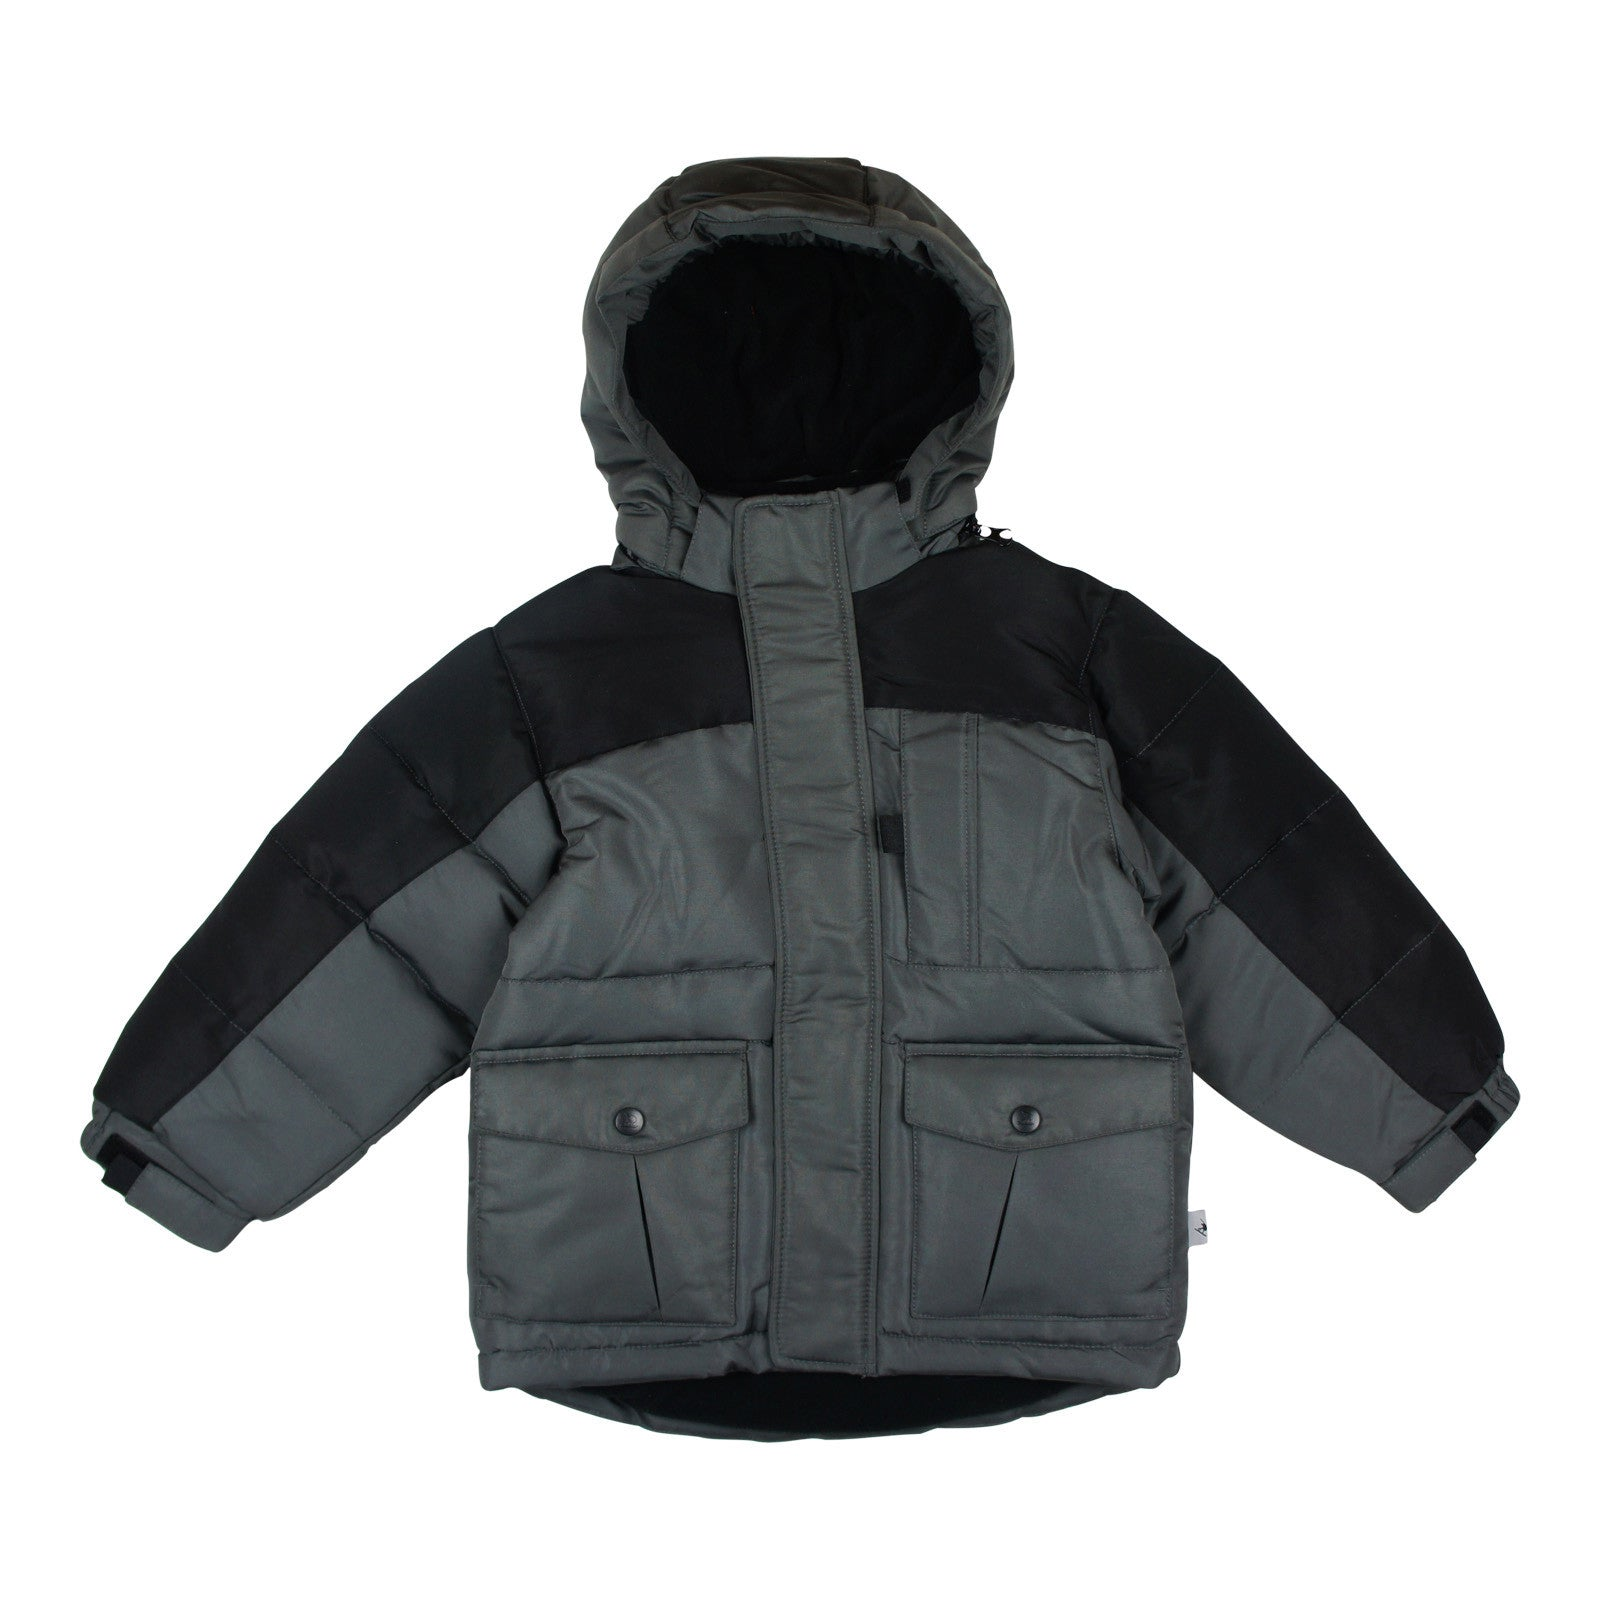 Rothschild Charcoal Two Tone Boys Jacket - Young Timers Boutique